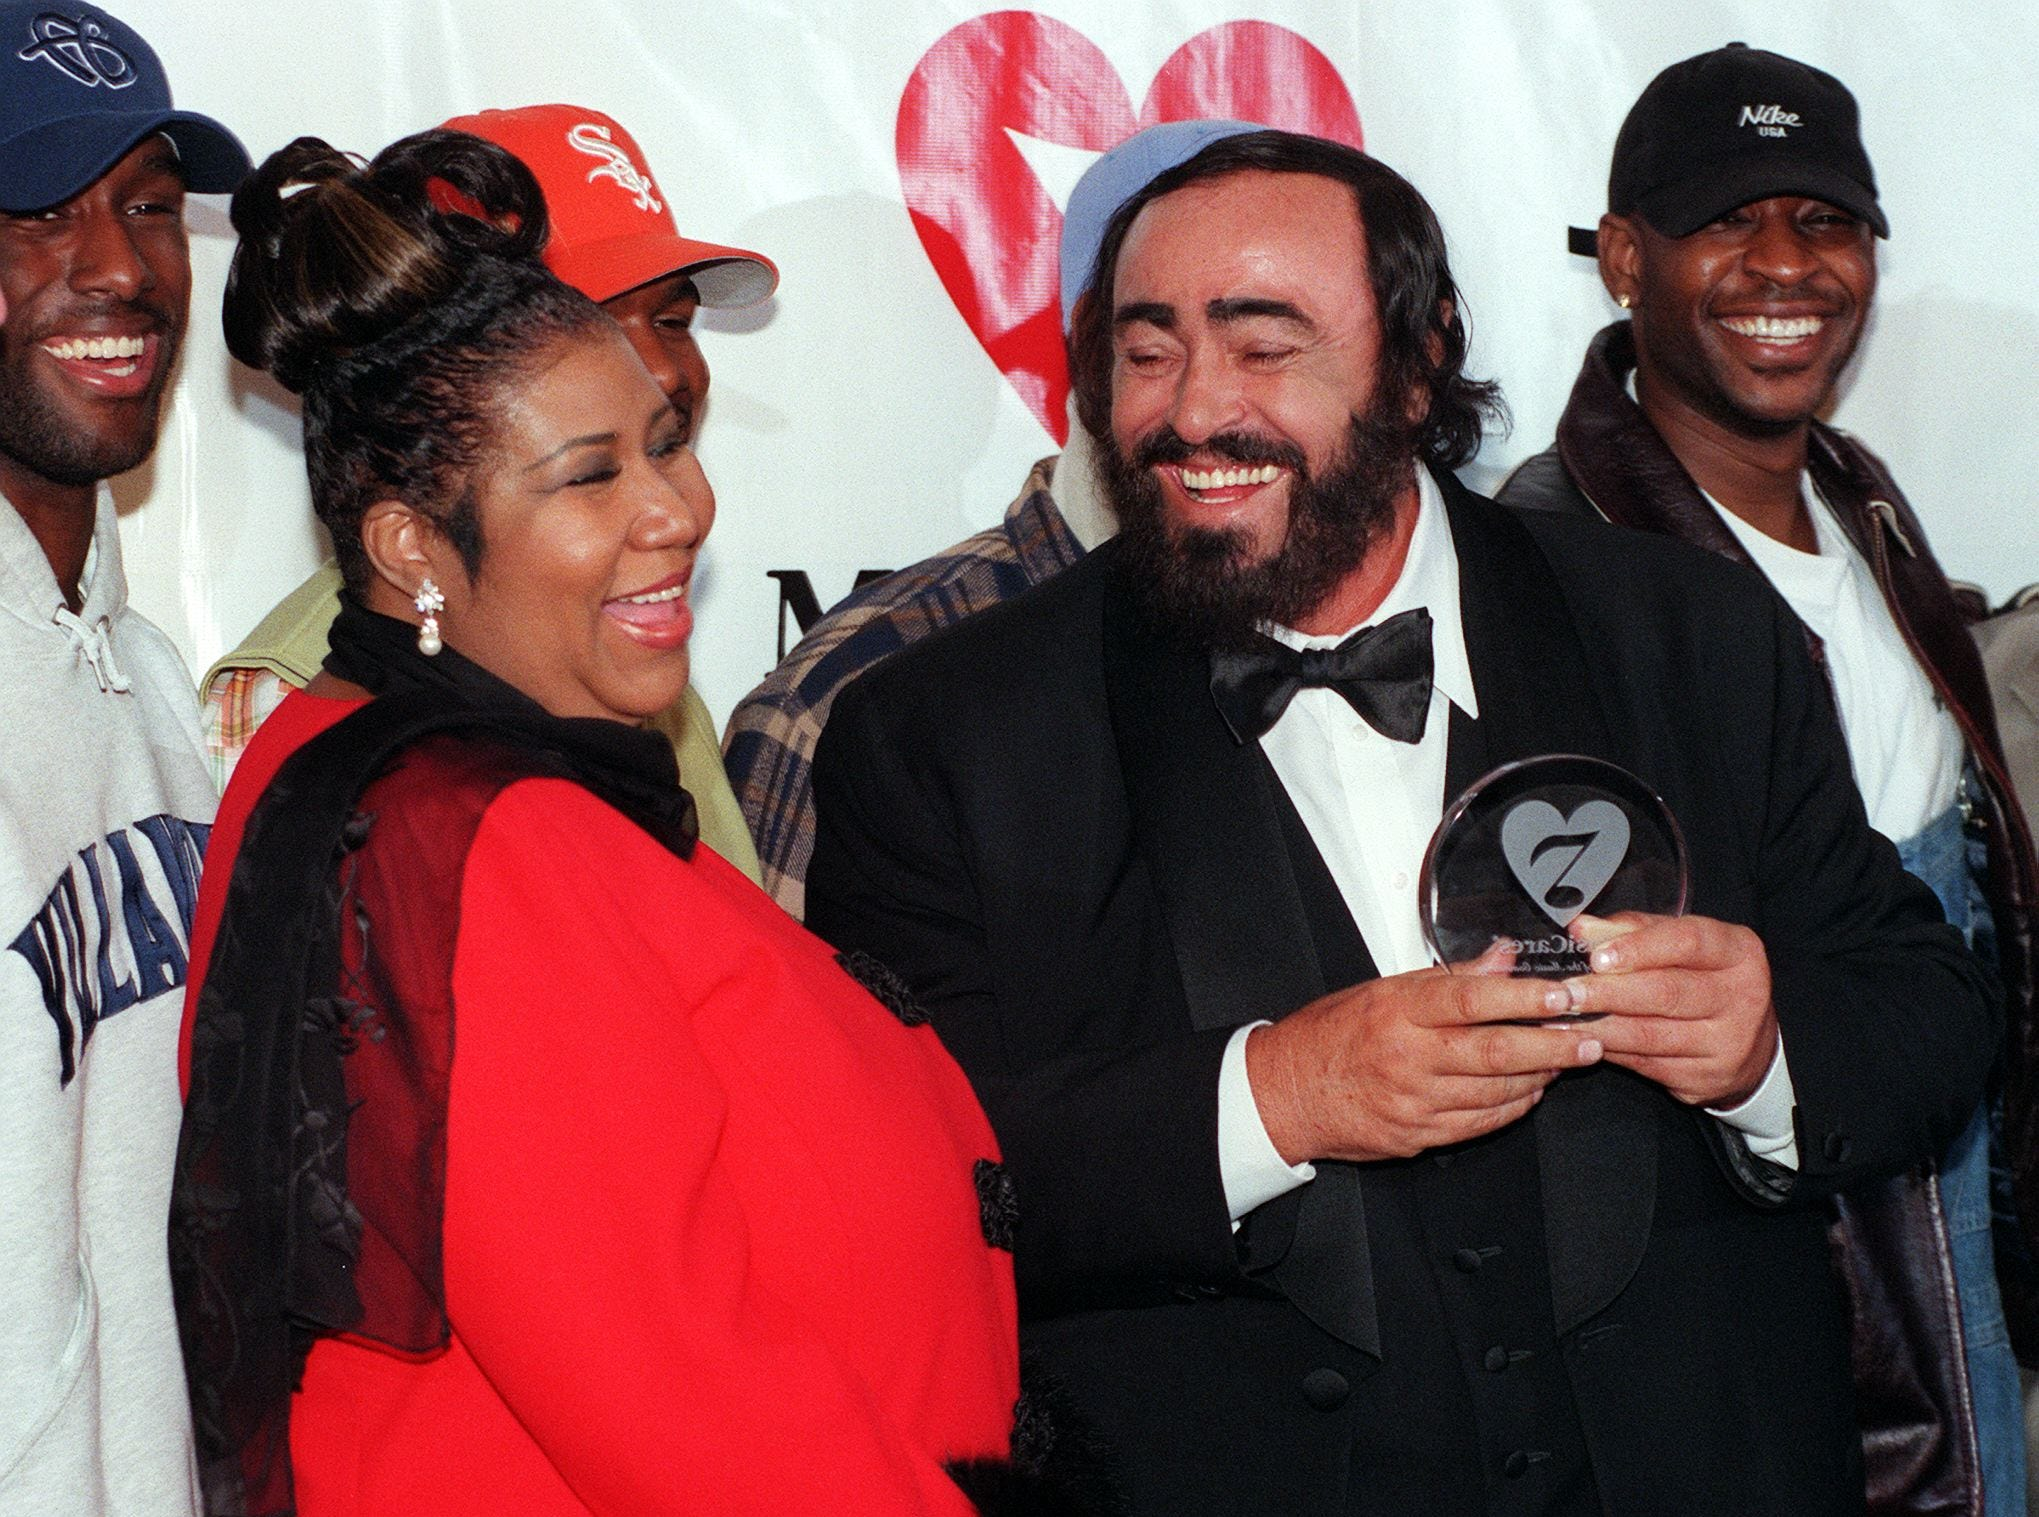 "(FILES) In this file photo taken on February 23, 1998 Opera singer Luciano Pavarotti (R) laughs along with singer Aretha Franklin (L) and the group Boyz II Men (rear) after accepting the eighth MusiCares Foundation ""Person of the Year"" award in New York. - Aretha Franklin died at the age of 76 on August 16, 2018 at her home in Detroit according to her publicist. (Photo by HENNY RAY ABRAMS / AFP)HENNY RAY ABRAMS/AFP/Getty Images ORIG FILE ID: AFP_18C7RH"